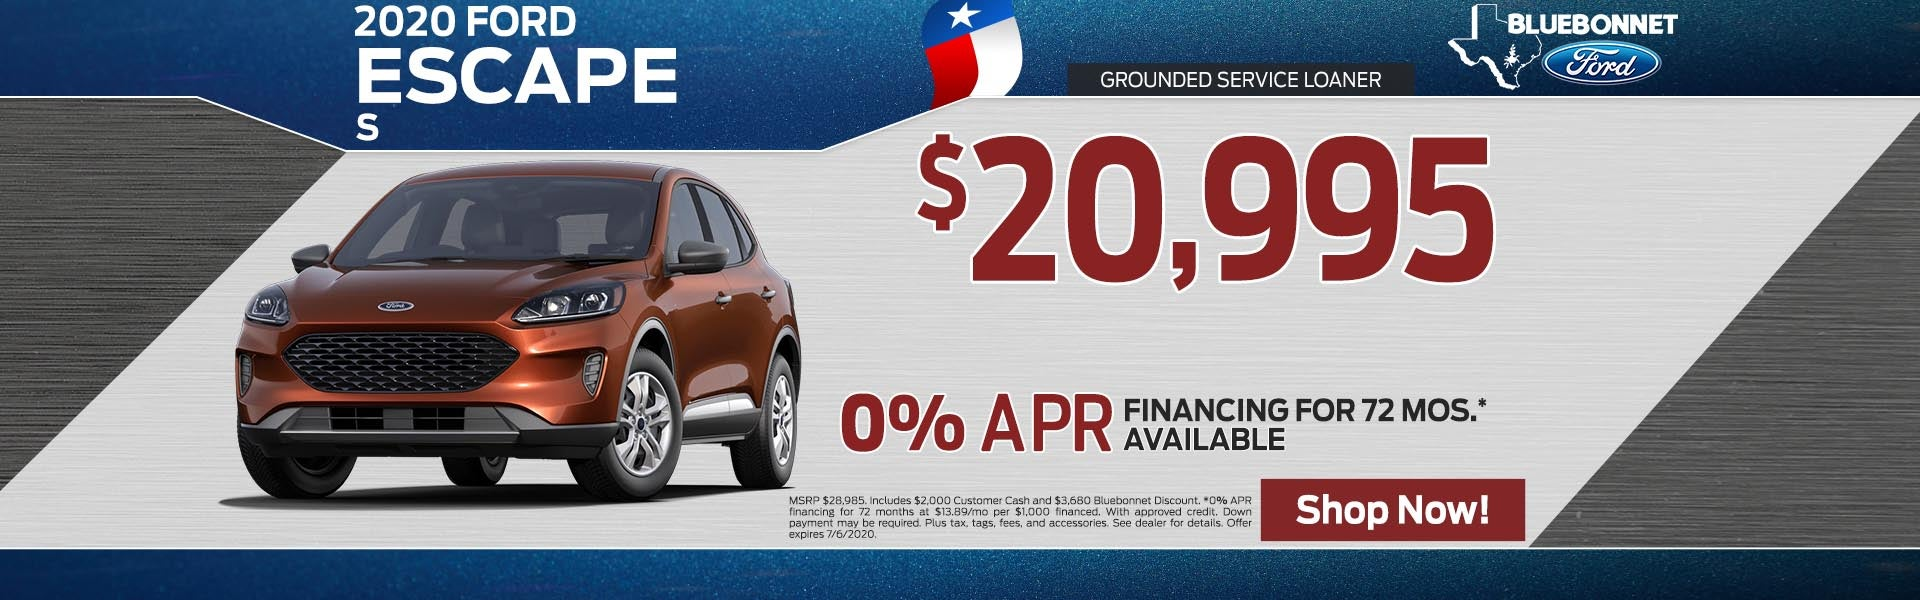 Ford Dealer in New Braunfels, TX | Used